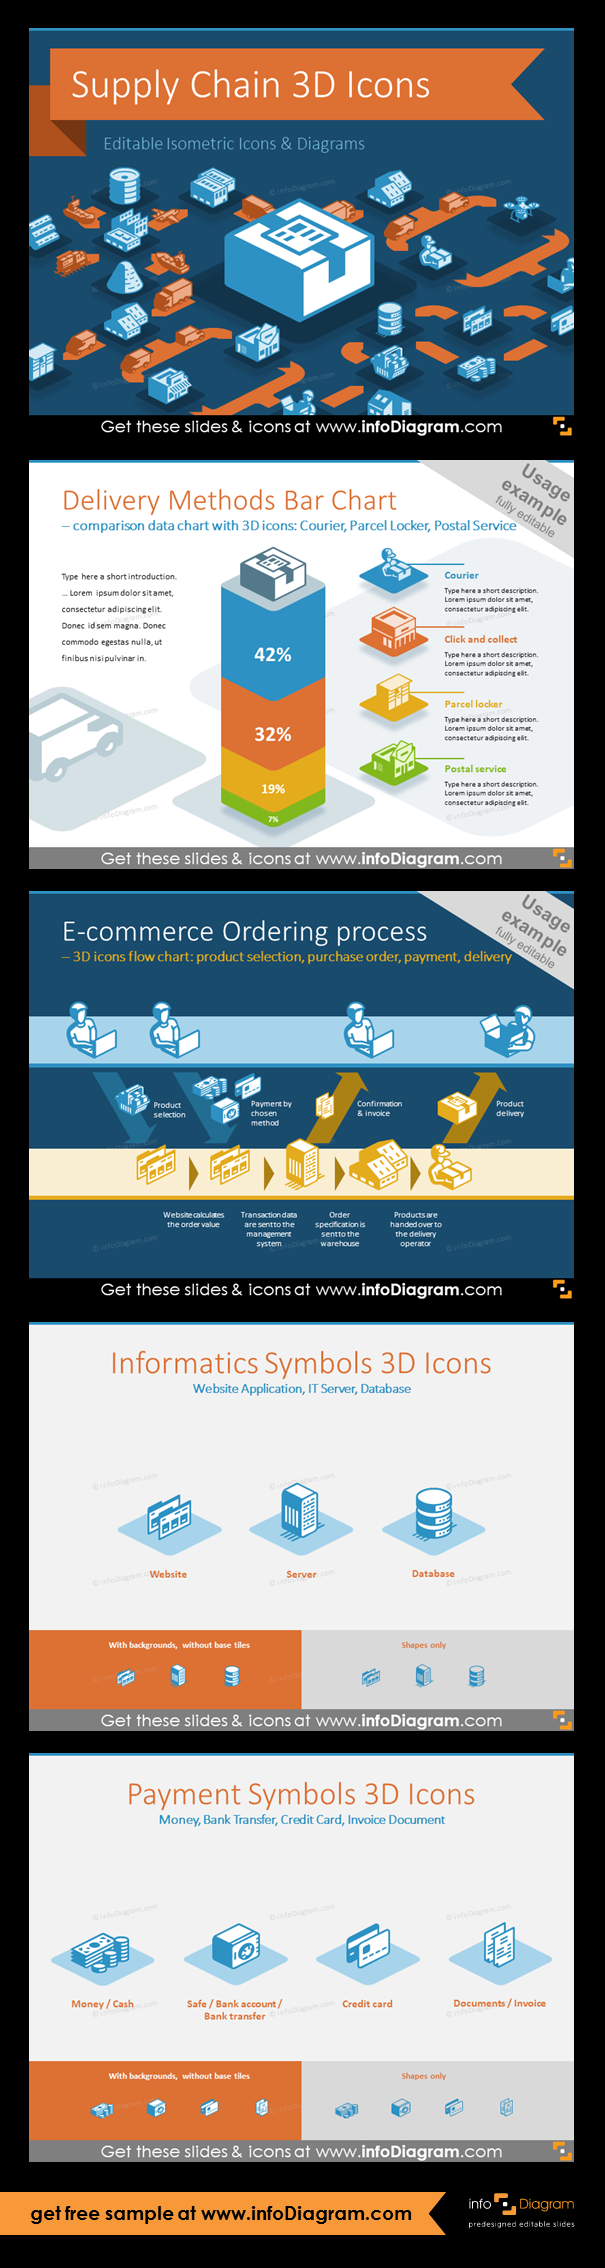 hight resolution of delivery methods bar chart comparison data chart with 3d icons courier parcel locker postal service e commerce ordering process 3d icons flow